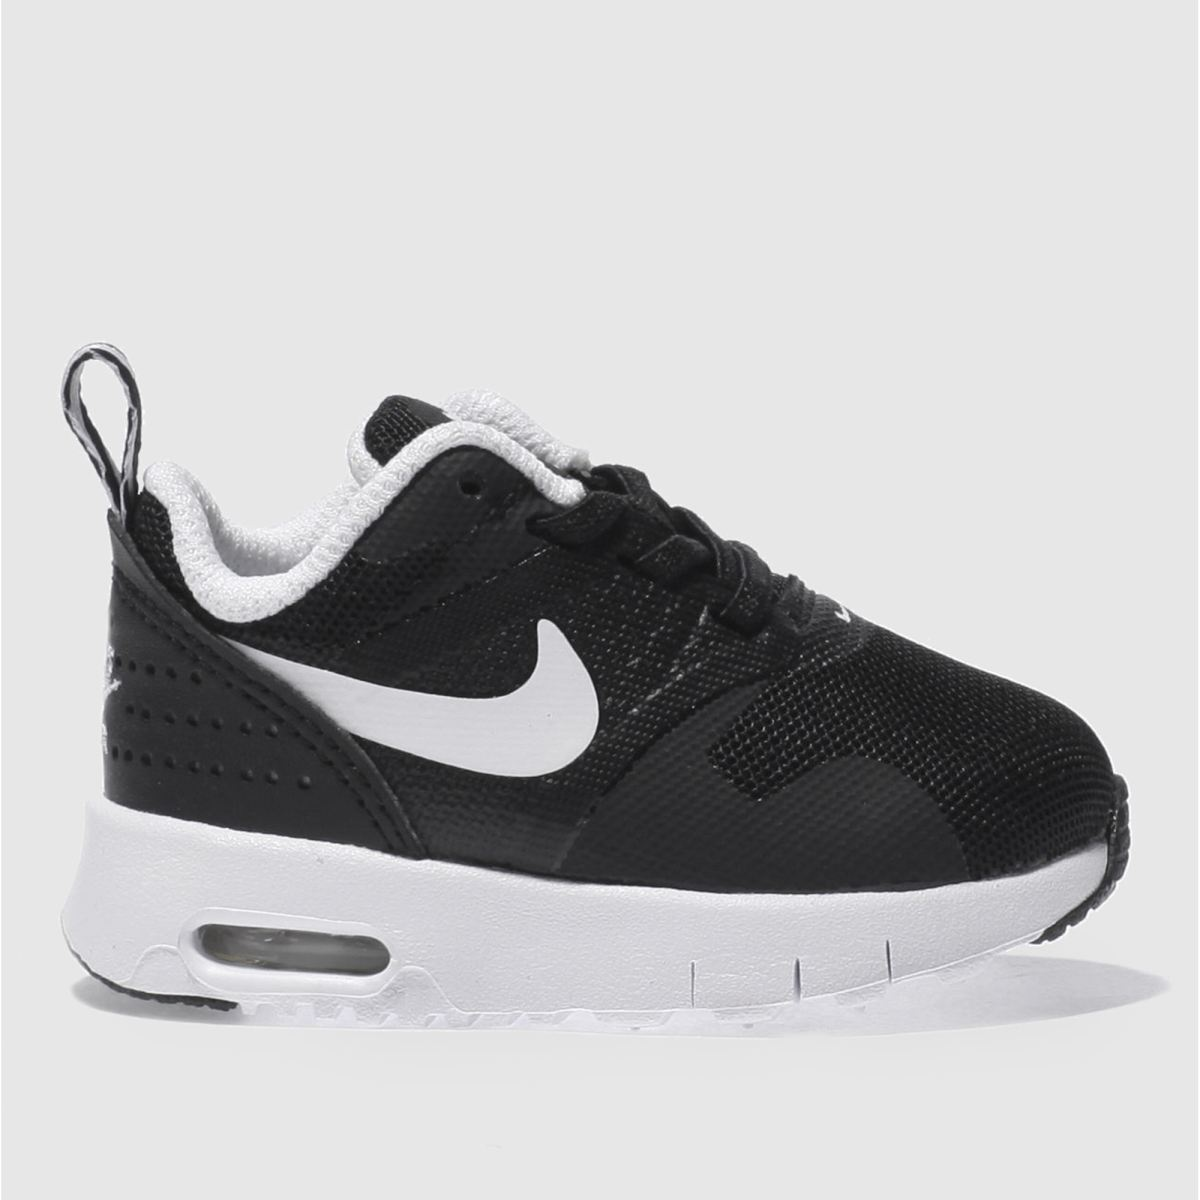 nike black & white air max tavas Toddler Trainers